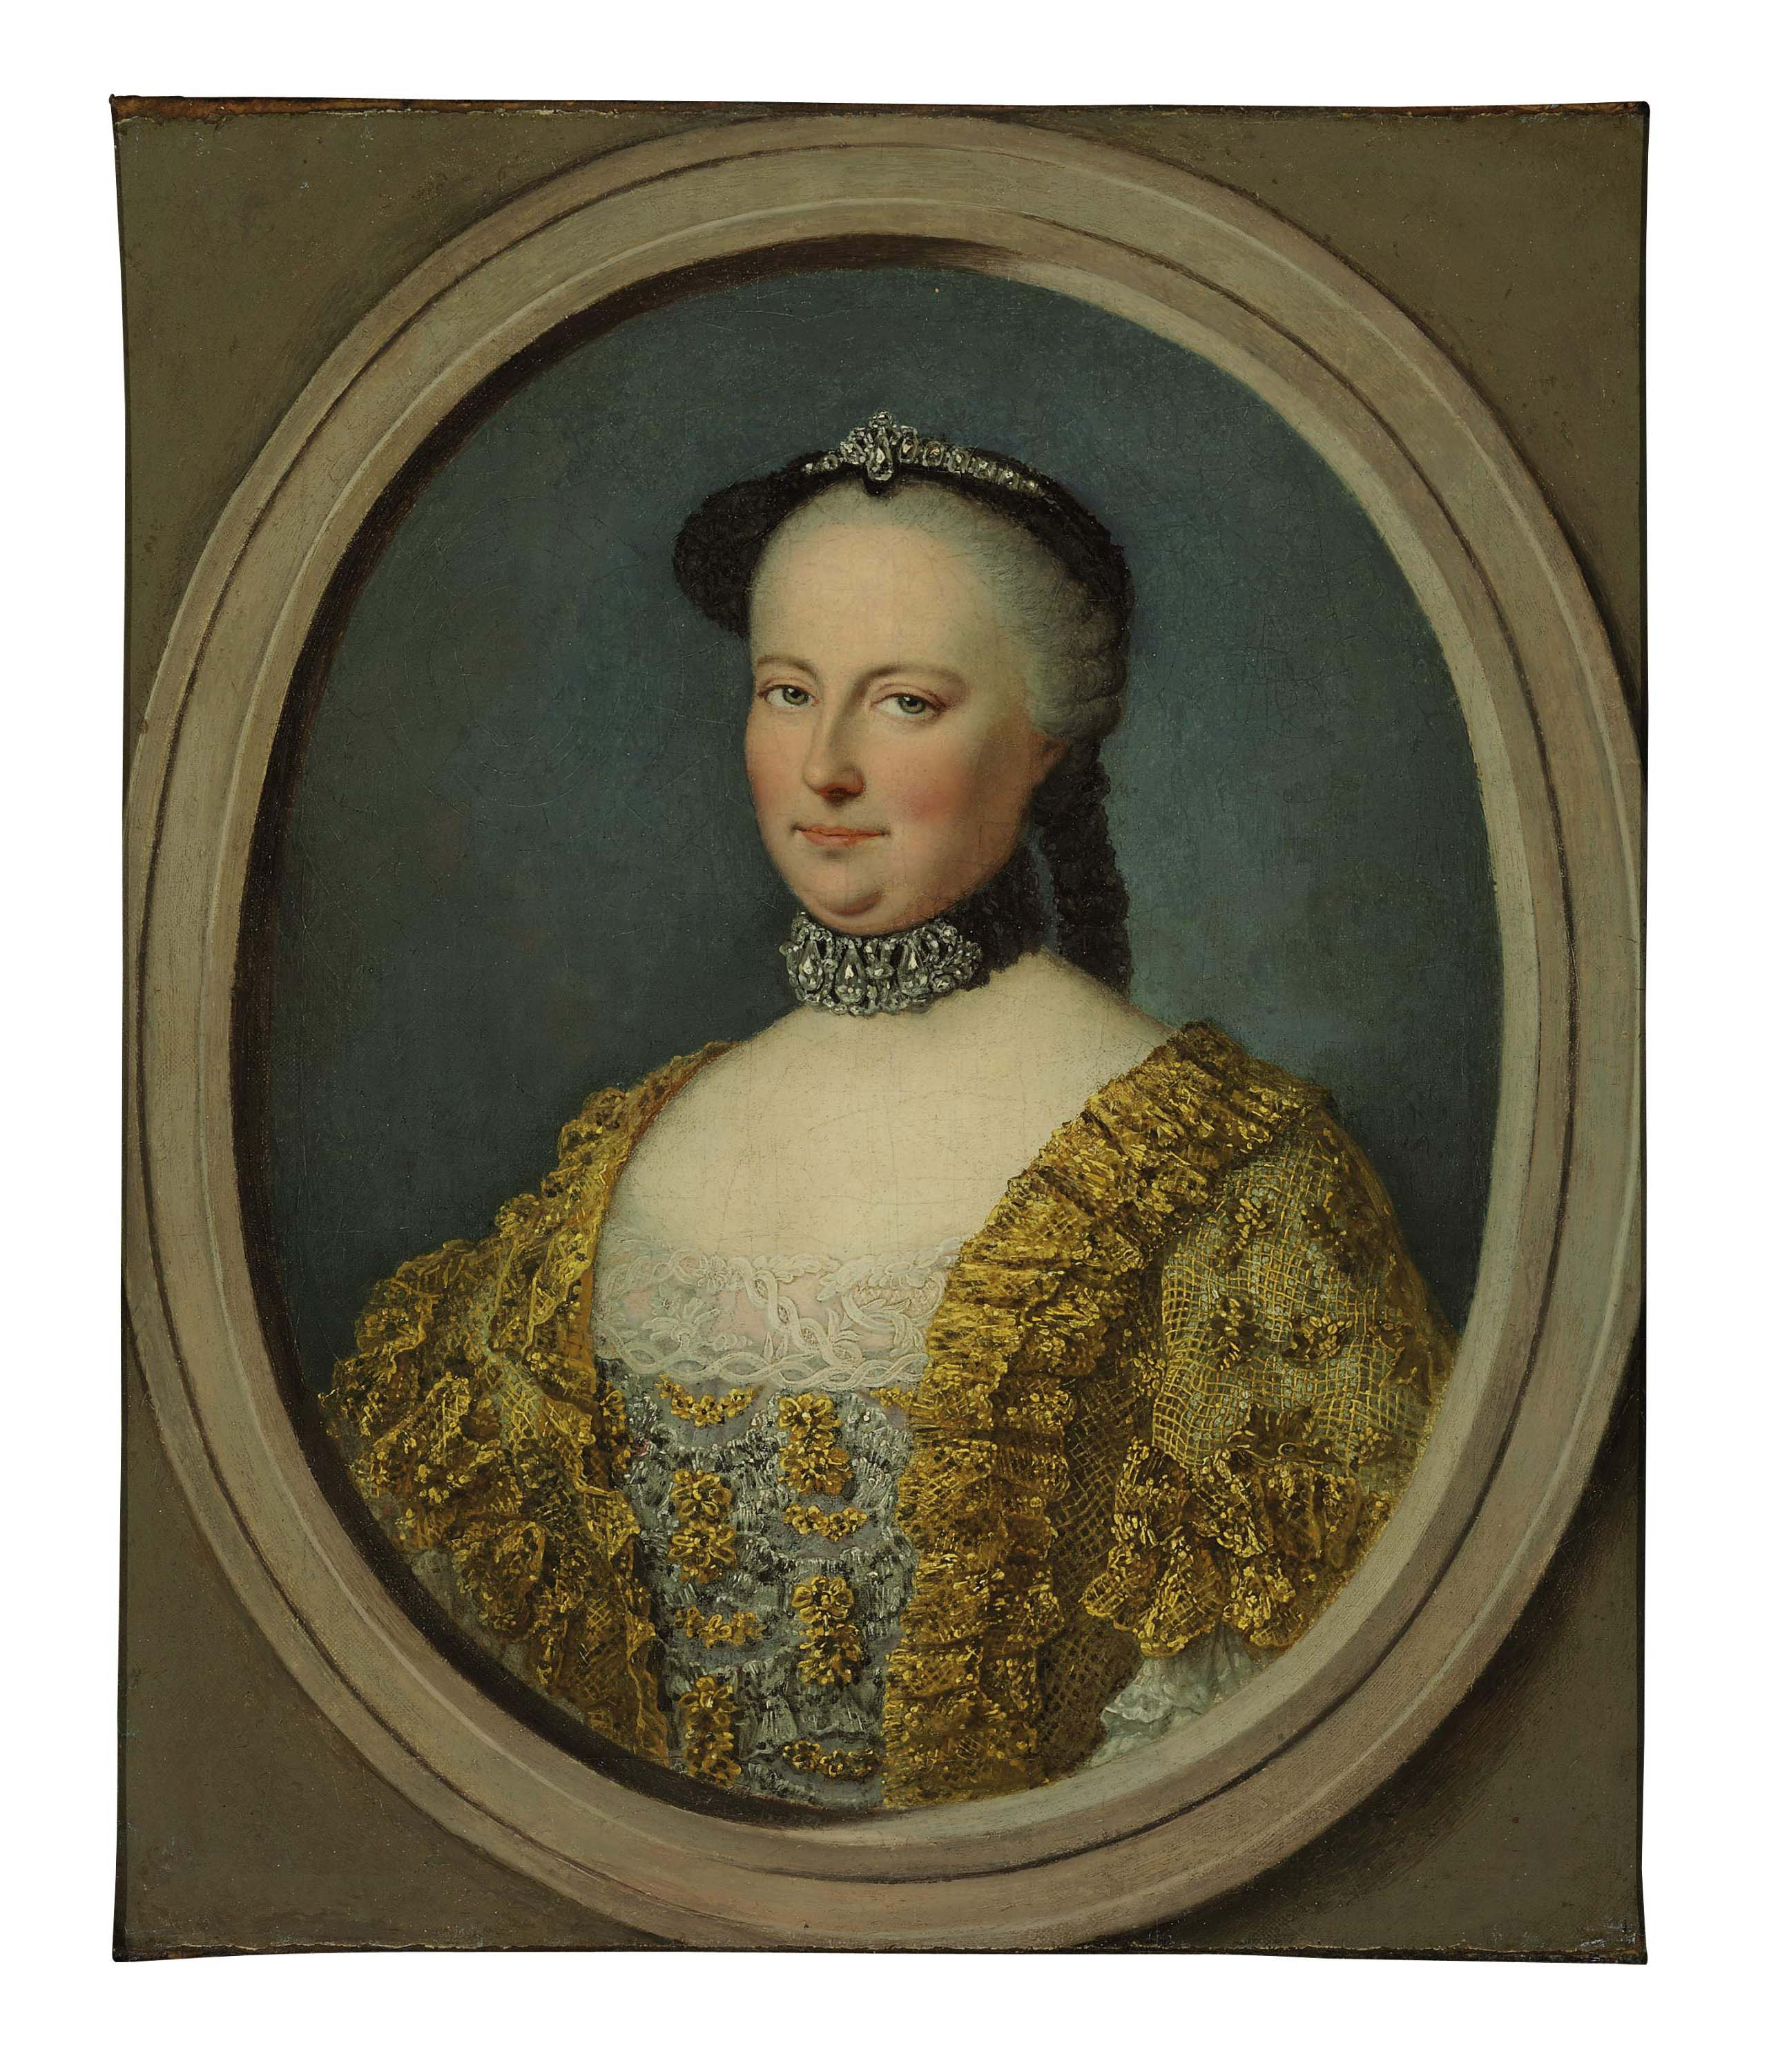 Portrait of Maria Theresa, Empress of Austria, half-length, in a feigned stone oval